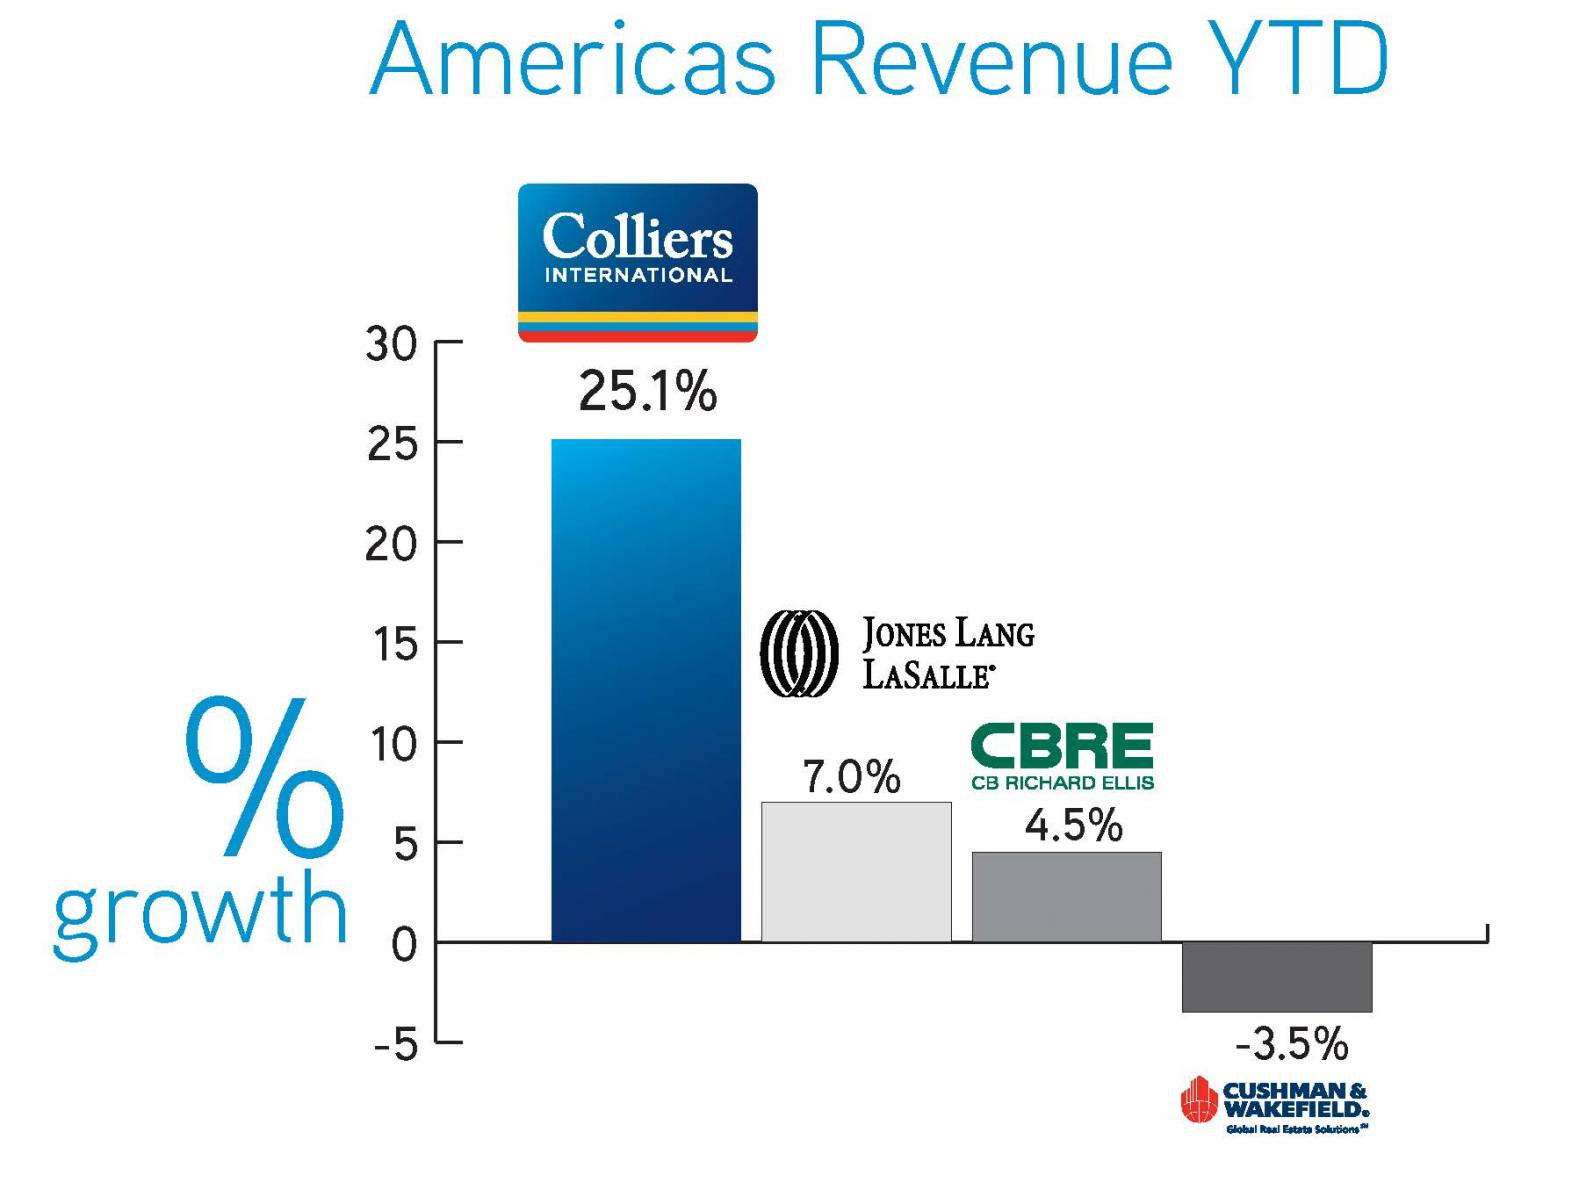 Colliers International Outpacing Industry, Growing Faster than 3 Biggest Comp